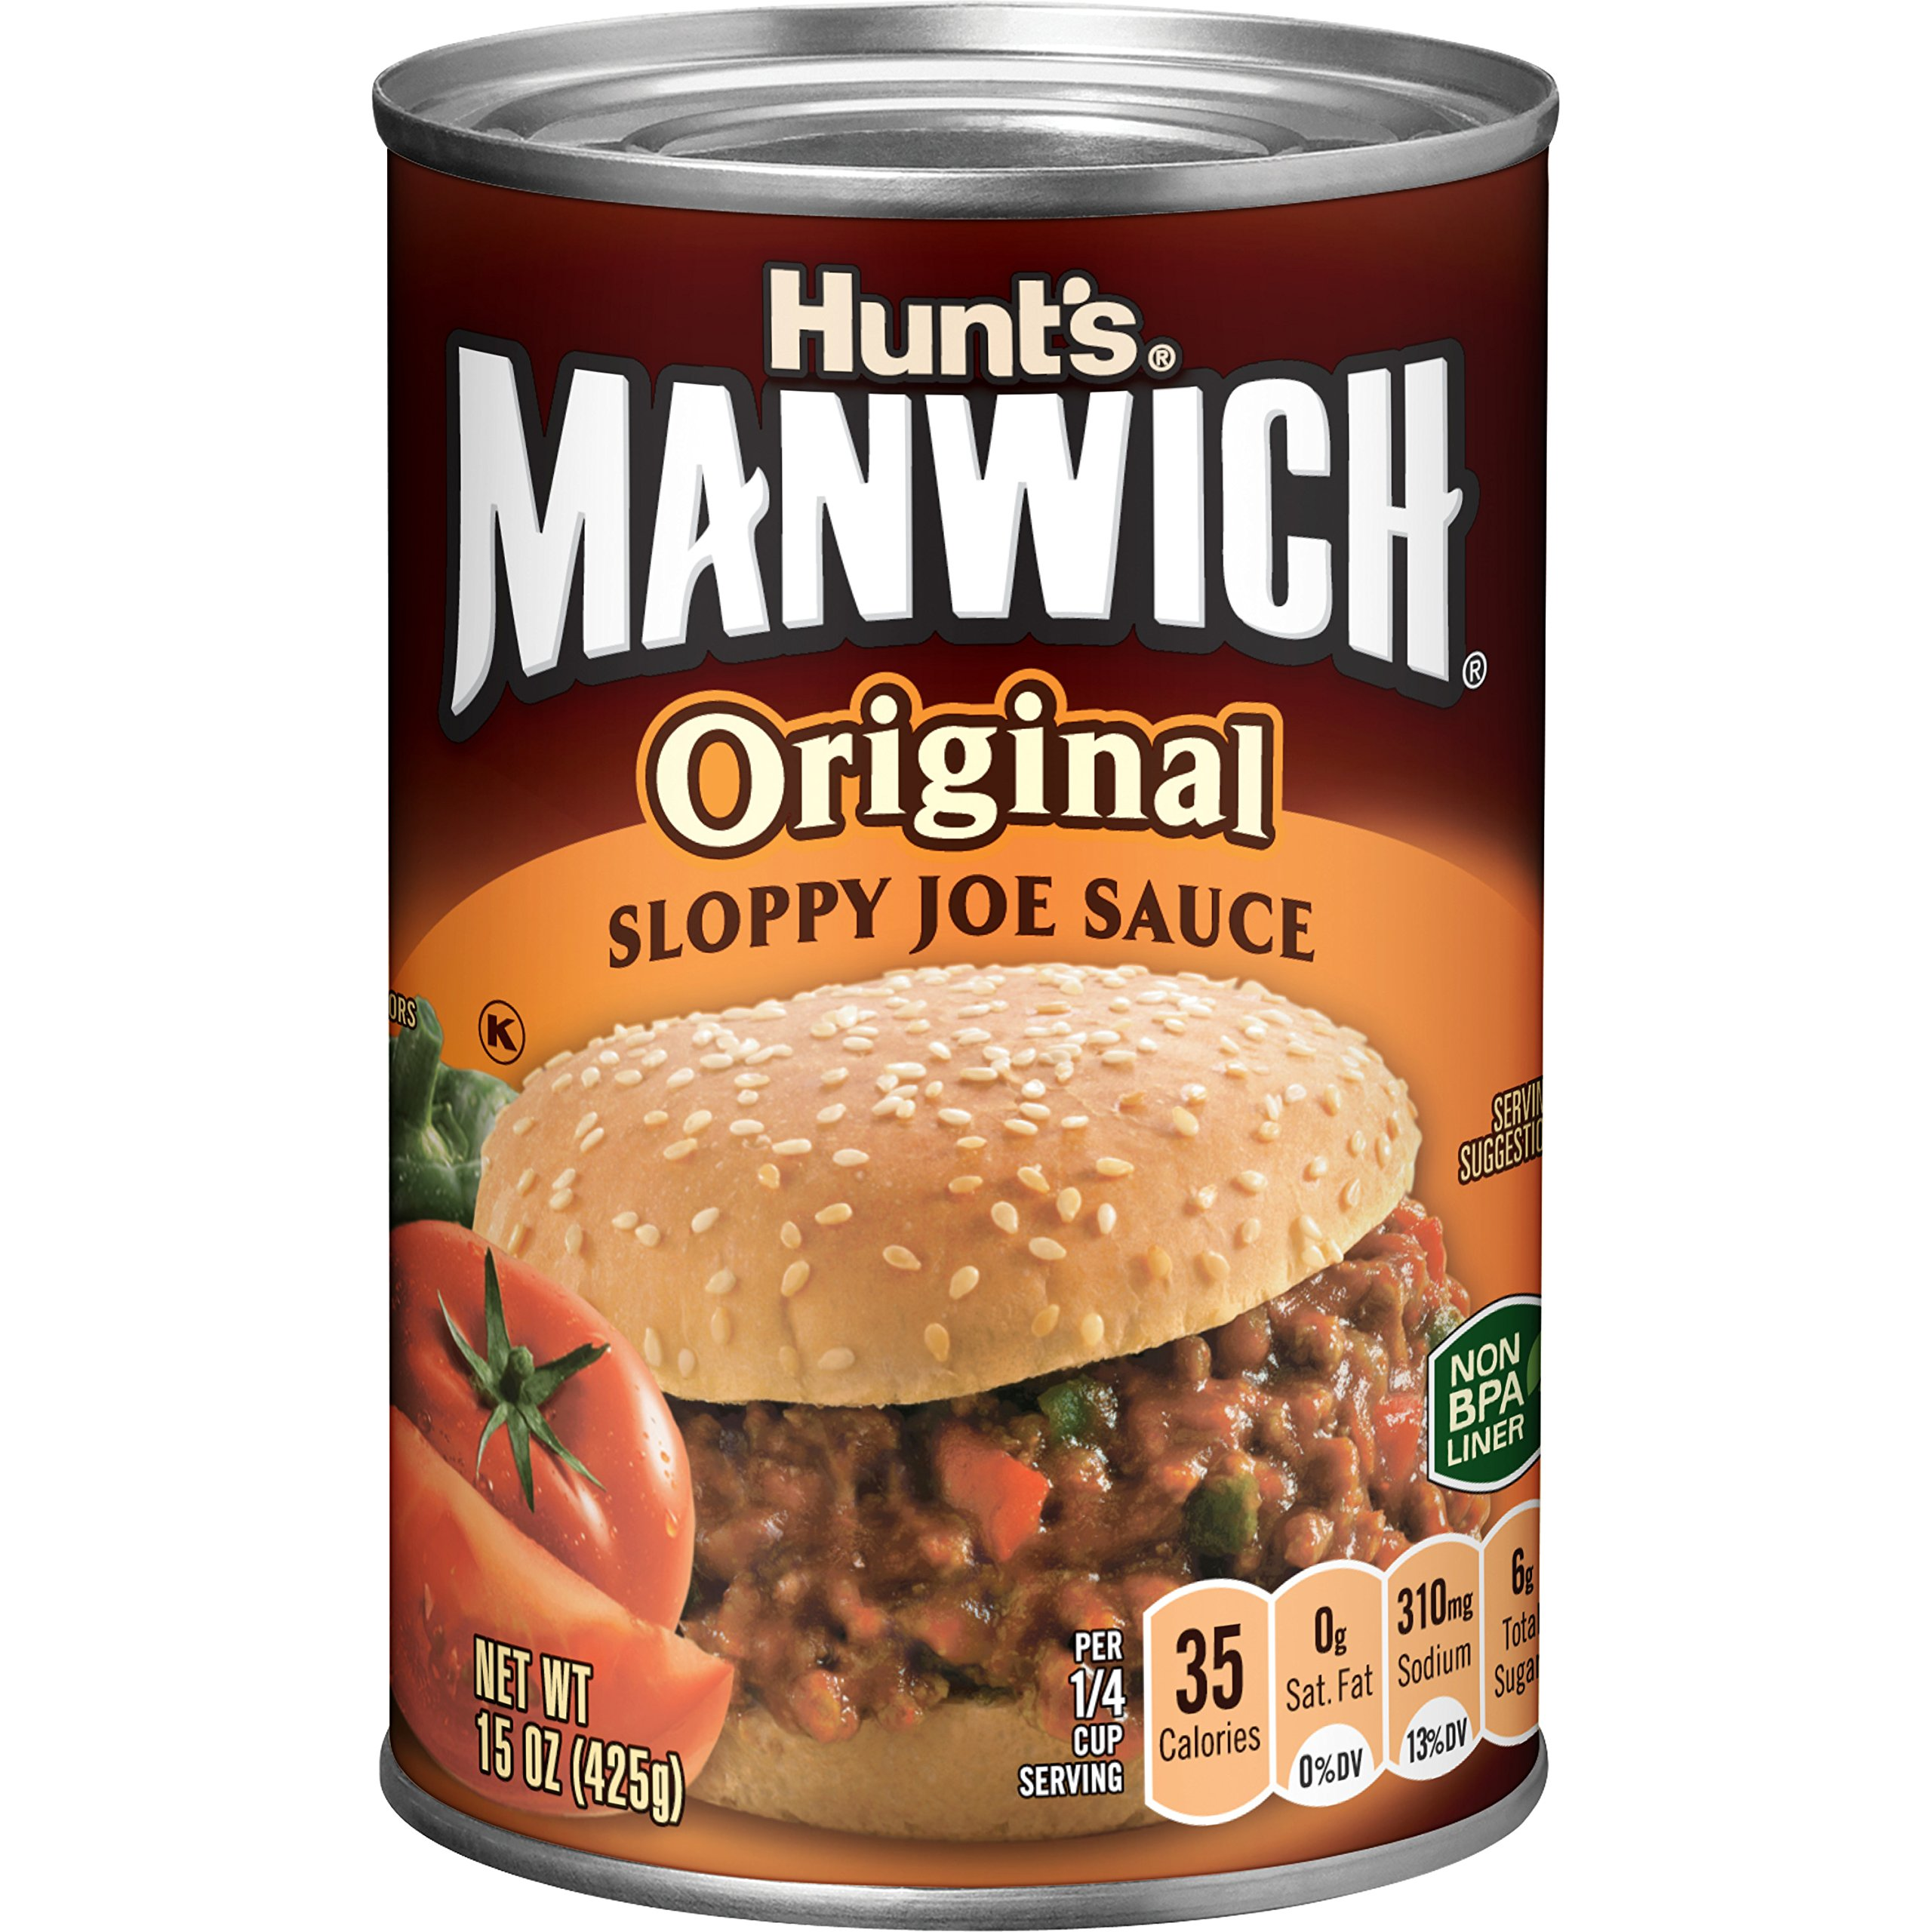 Manwich Original SloppyJoe Sauce, 15 oz